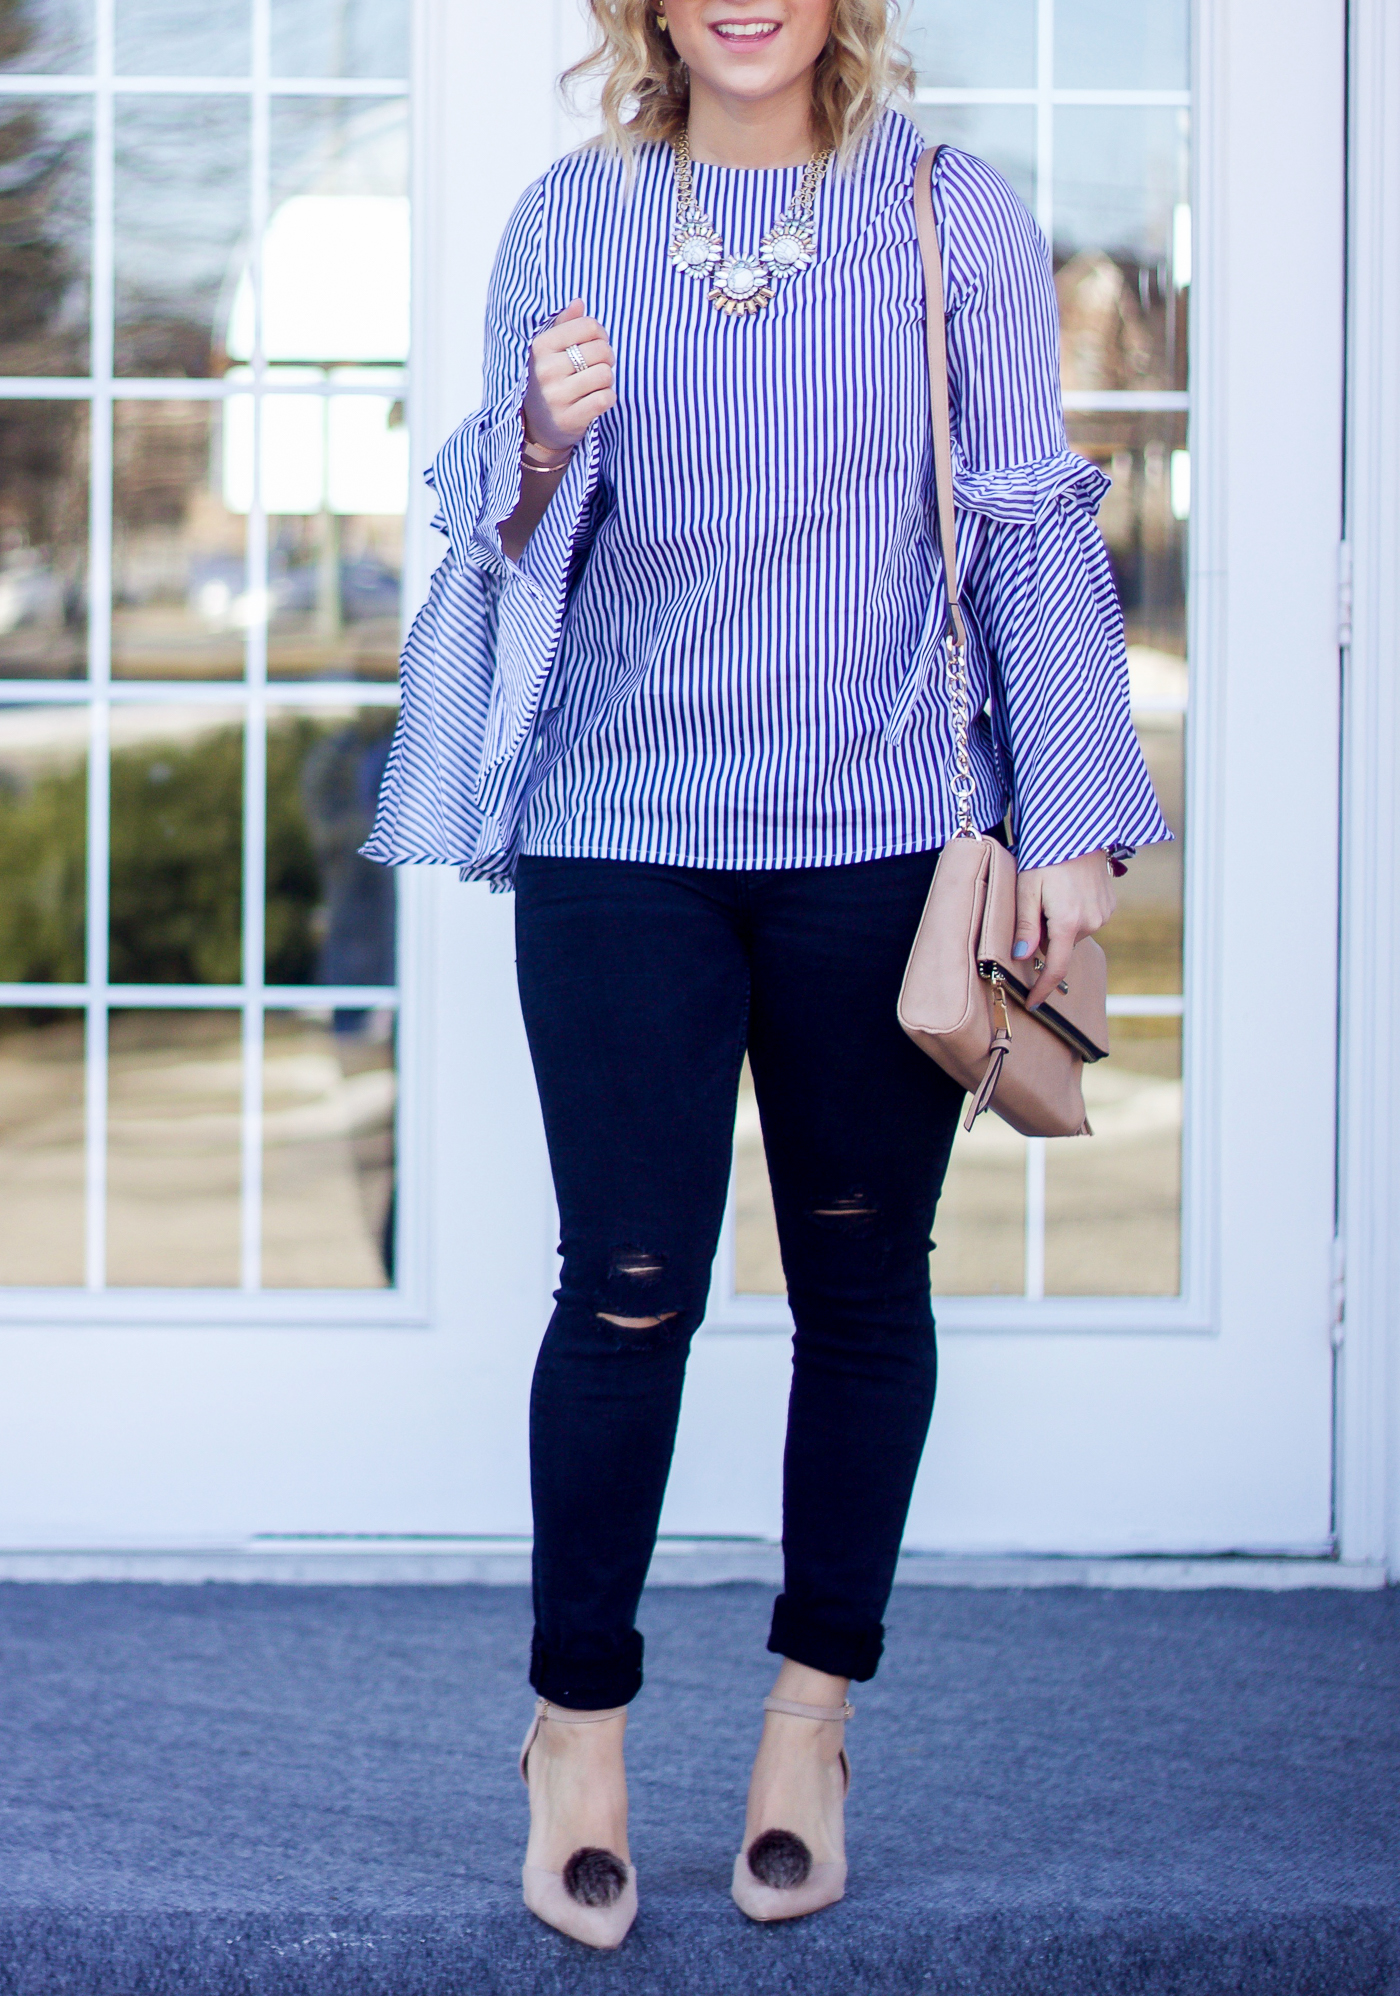 Canadian blogger is wearing a bell sleeve top with stripes from Chicwish with ripped black skinny jeans from Zara and pombons shoe accessories to spice up the look